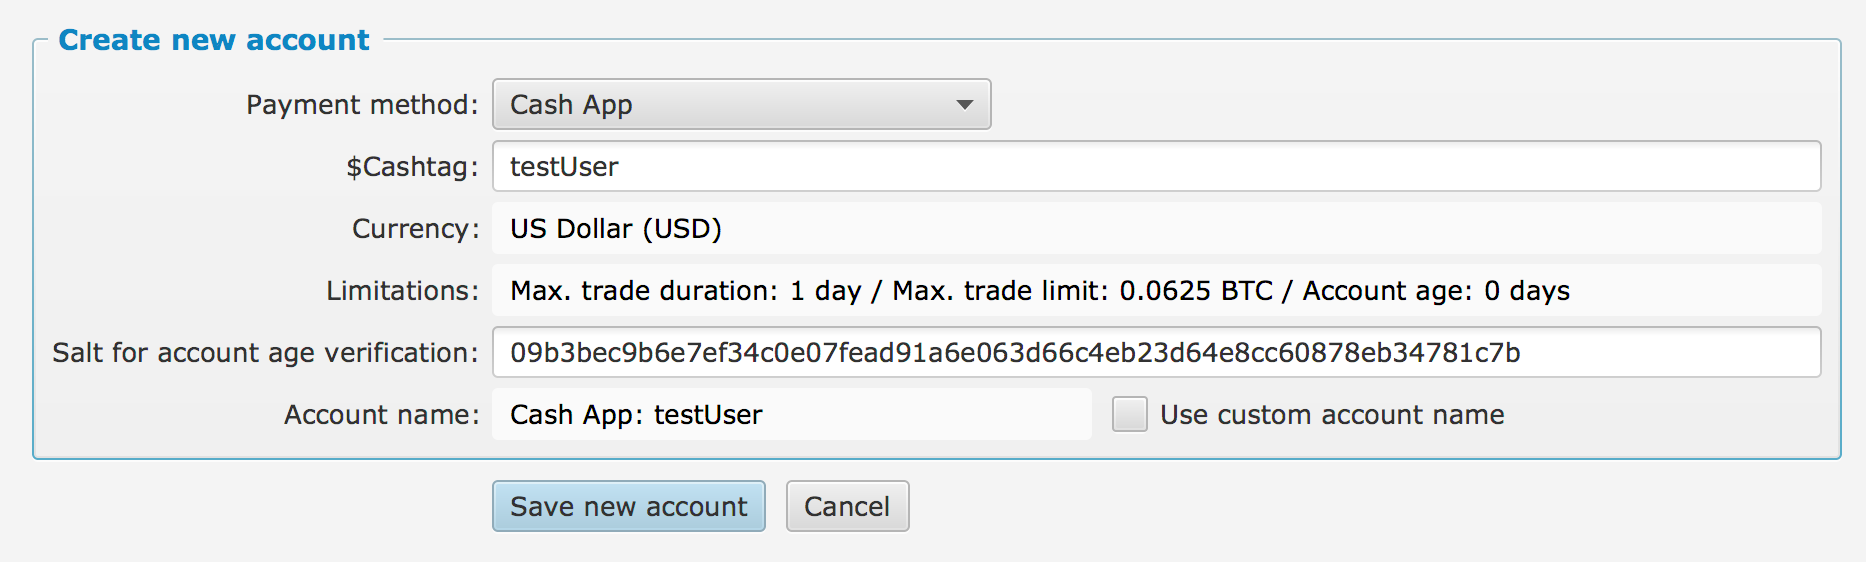 Add payment method: Square Cash App · Issue #1049 · bisq-network